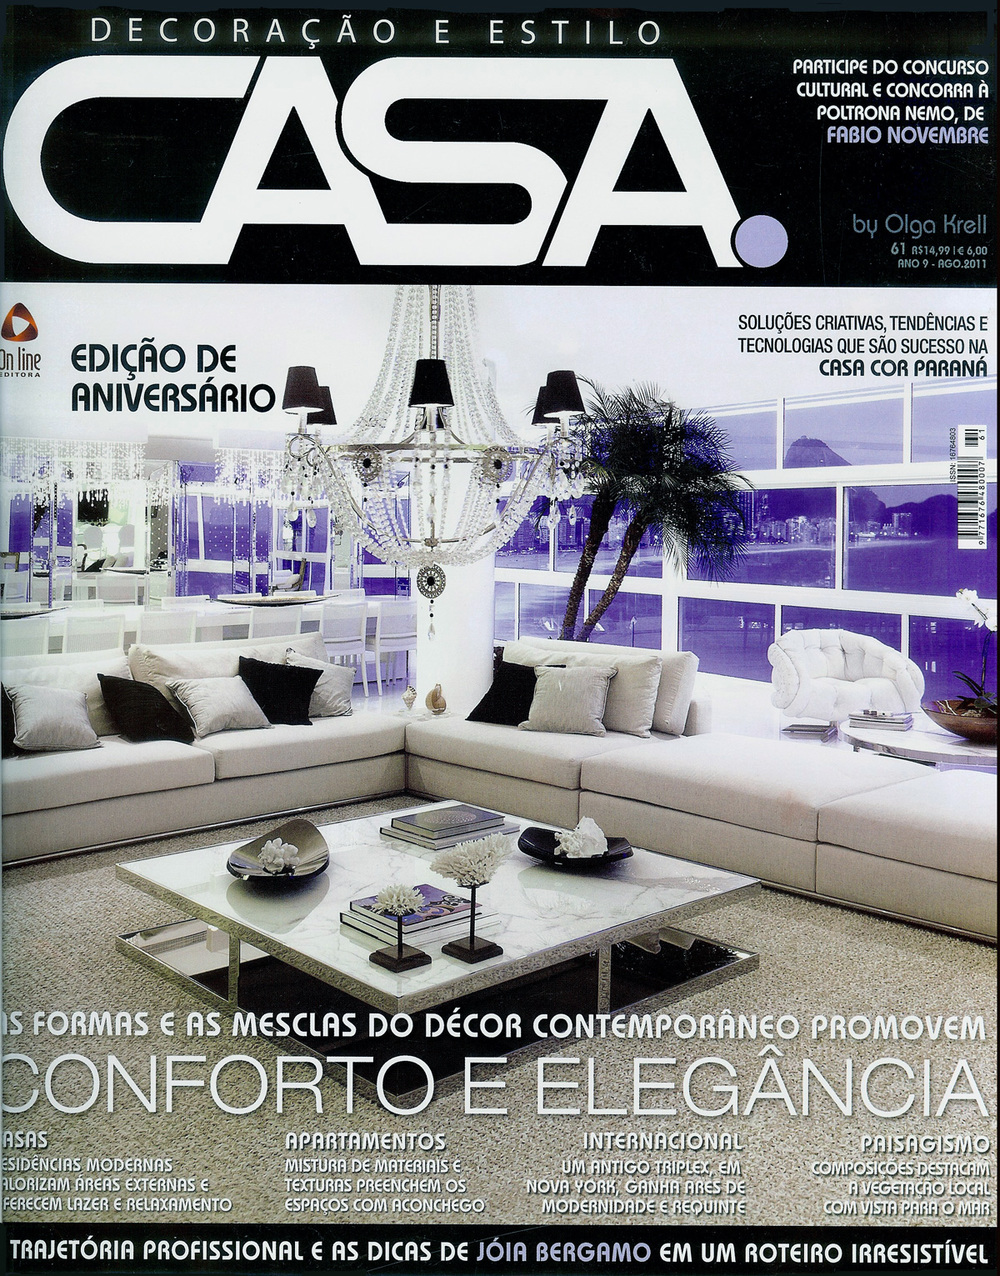 ATI---EB-Decoraçåo-E-Estilo-Casa,-Brazil-August-2011-Cover_WEB.jpg